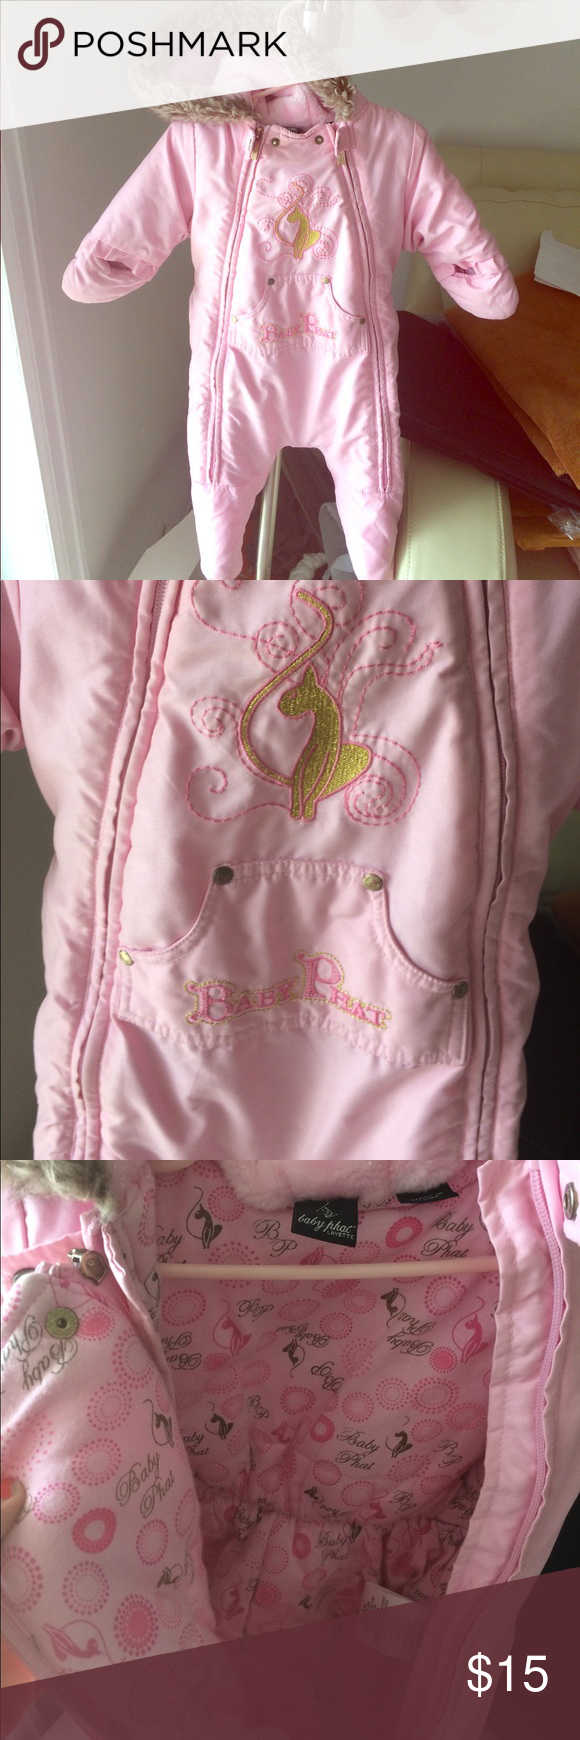 ea1fb0f0557e Baby Phat Snow Suit Adorable and warm baby snow suit. Size is 0-6m ...